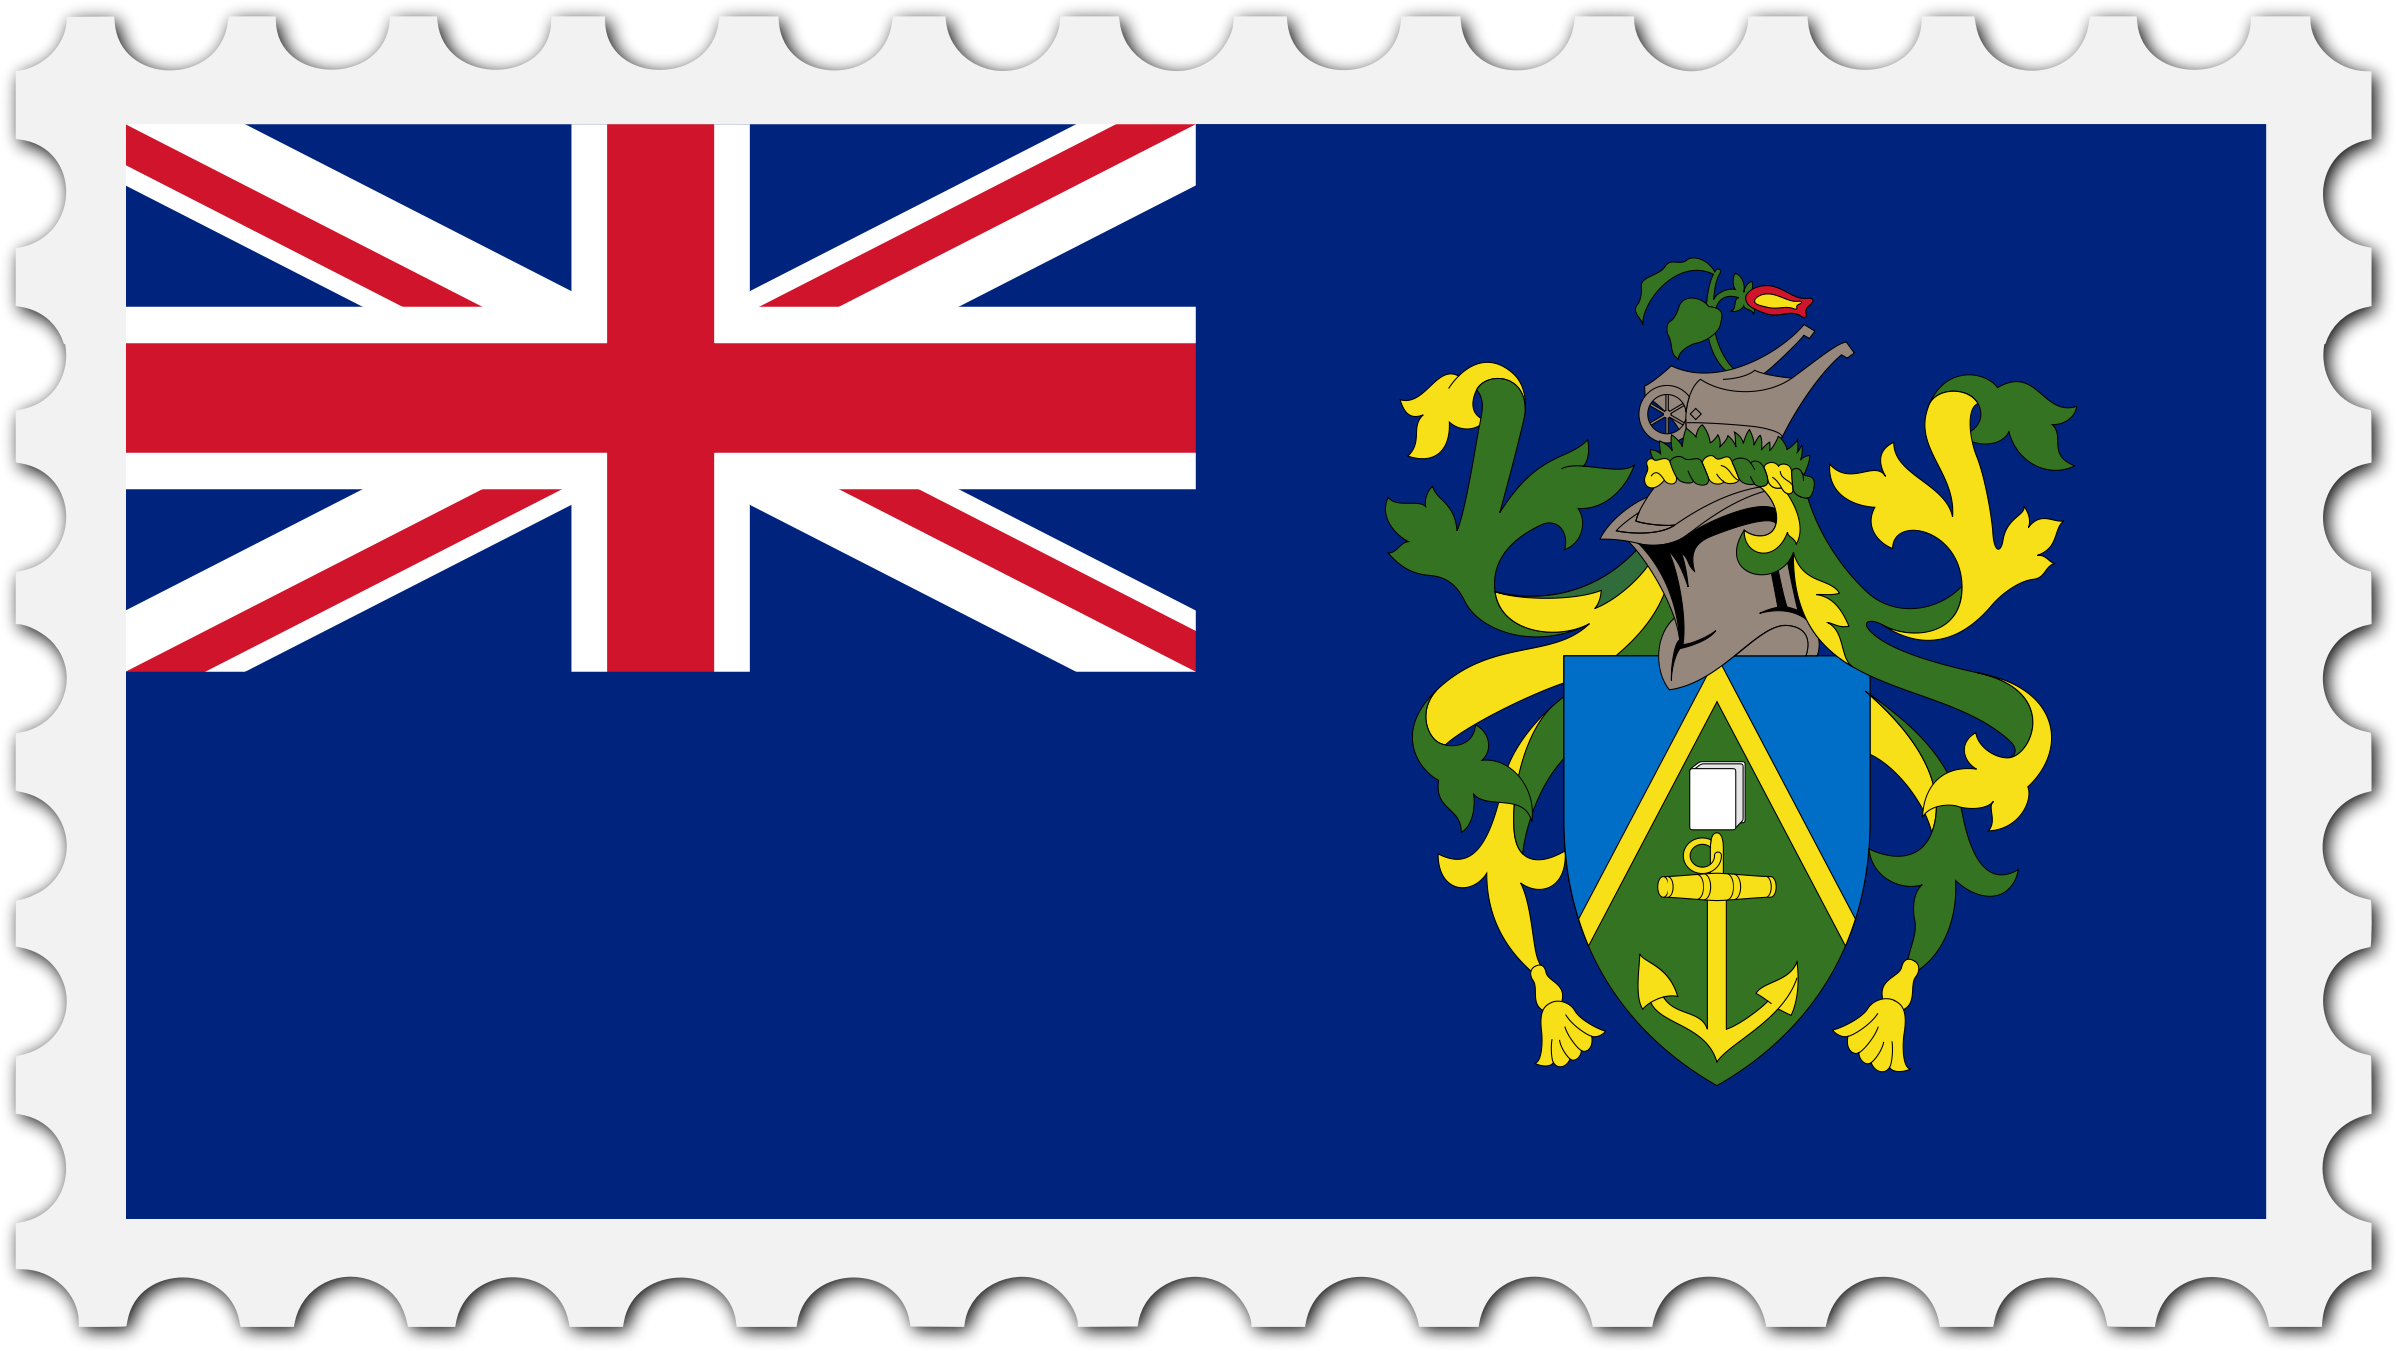 Pitcairn Islands flag stamp by Firkin